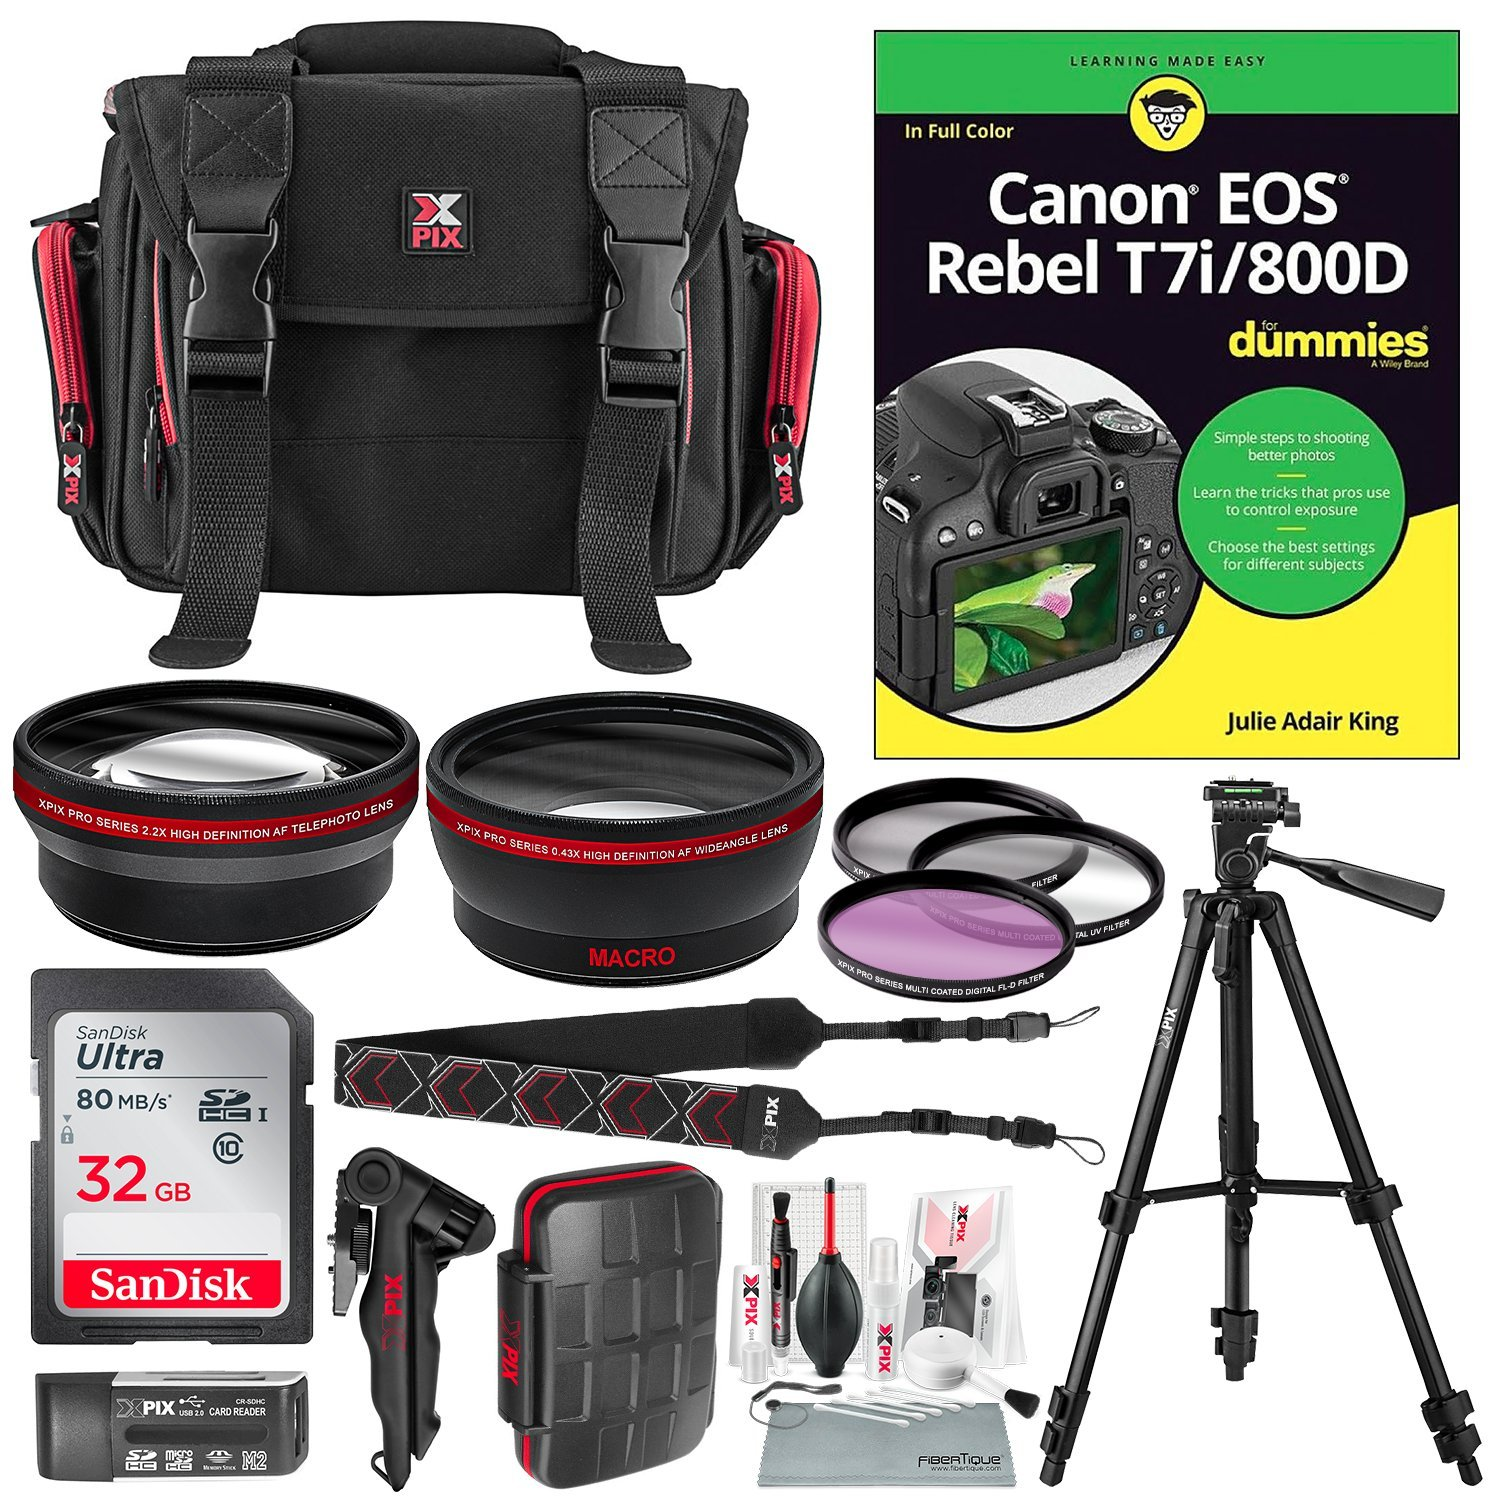 Canon EOS Rebel T7i/800D for Dummies + Deluxe Accessory Bundle with Xpix Tripods, Lenses, Filters, 32GB, Premium DSLR Bag, Replacement Battery w/Charger, Complete Cleaning Kit, More